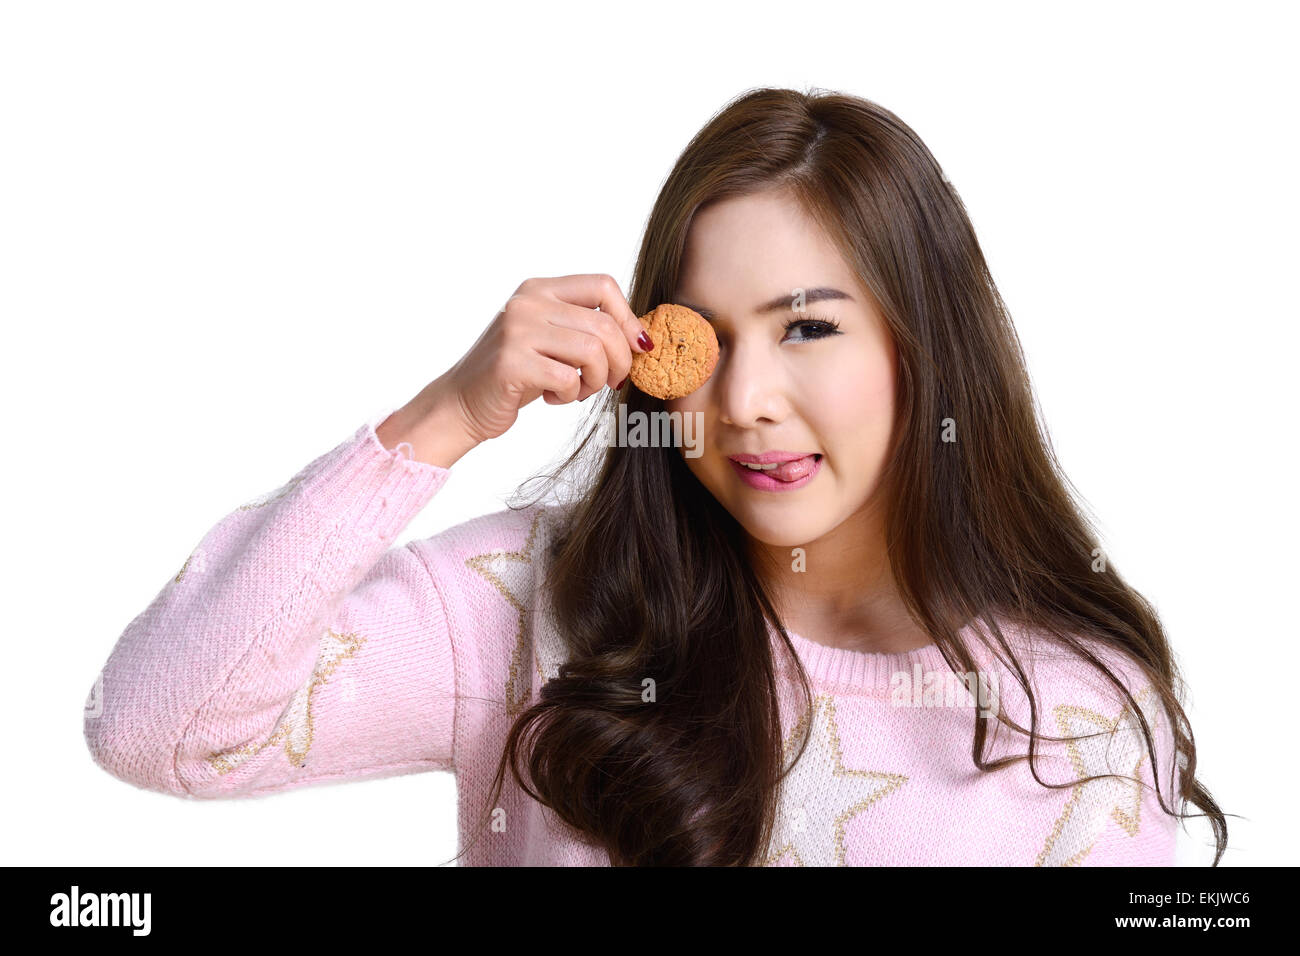 Cute girl in pink sweater on white background make funny action by bring cookie closed her eye and show her tongue. - Stock Image